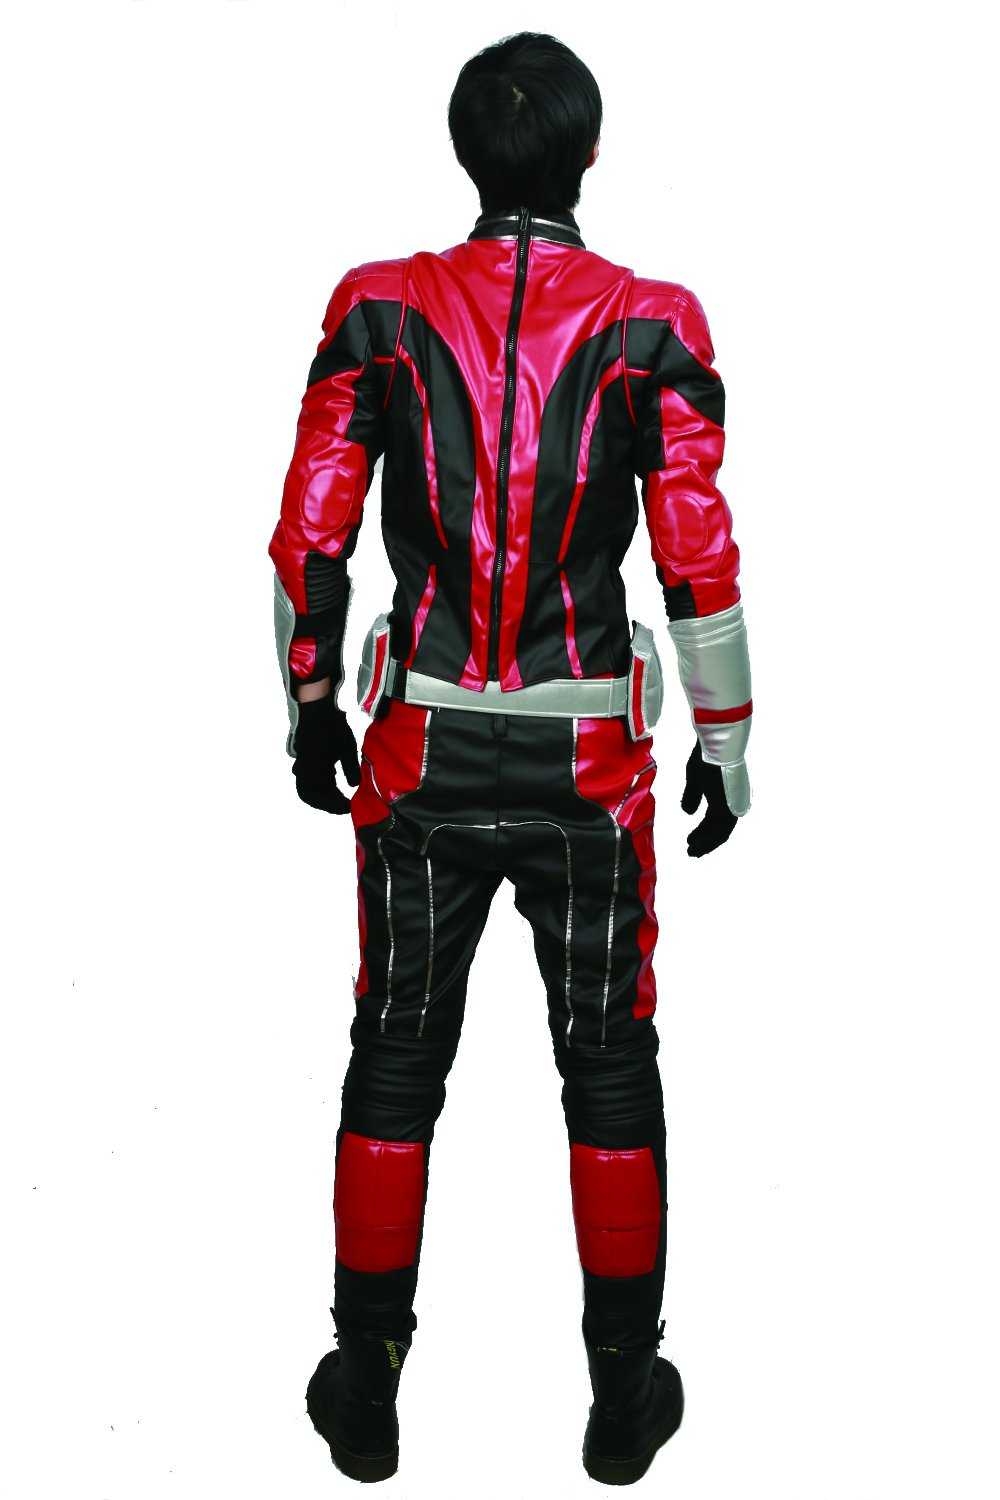 xcoser Ant Man Costume with Helmet Deluxe PU Cosplay Outfit Belt Gloves Full Suit Halloween Custom Made by xcoser (Image #5)